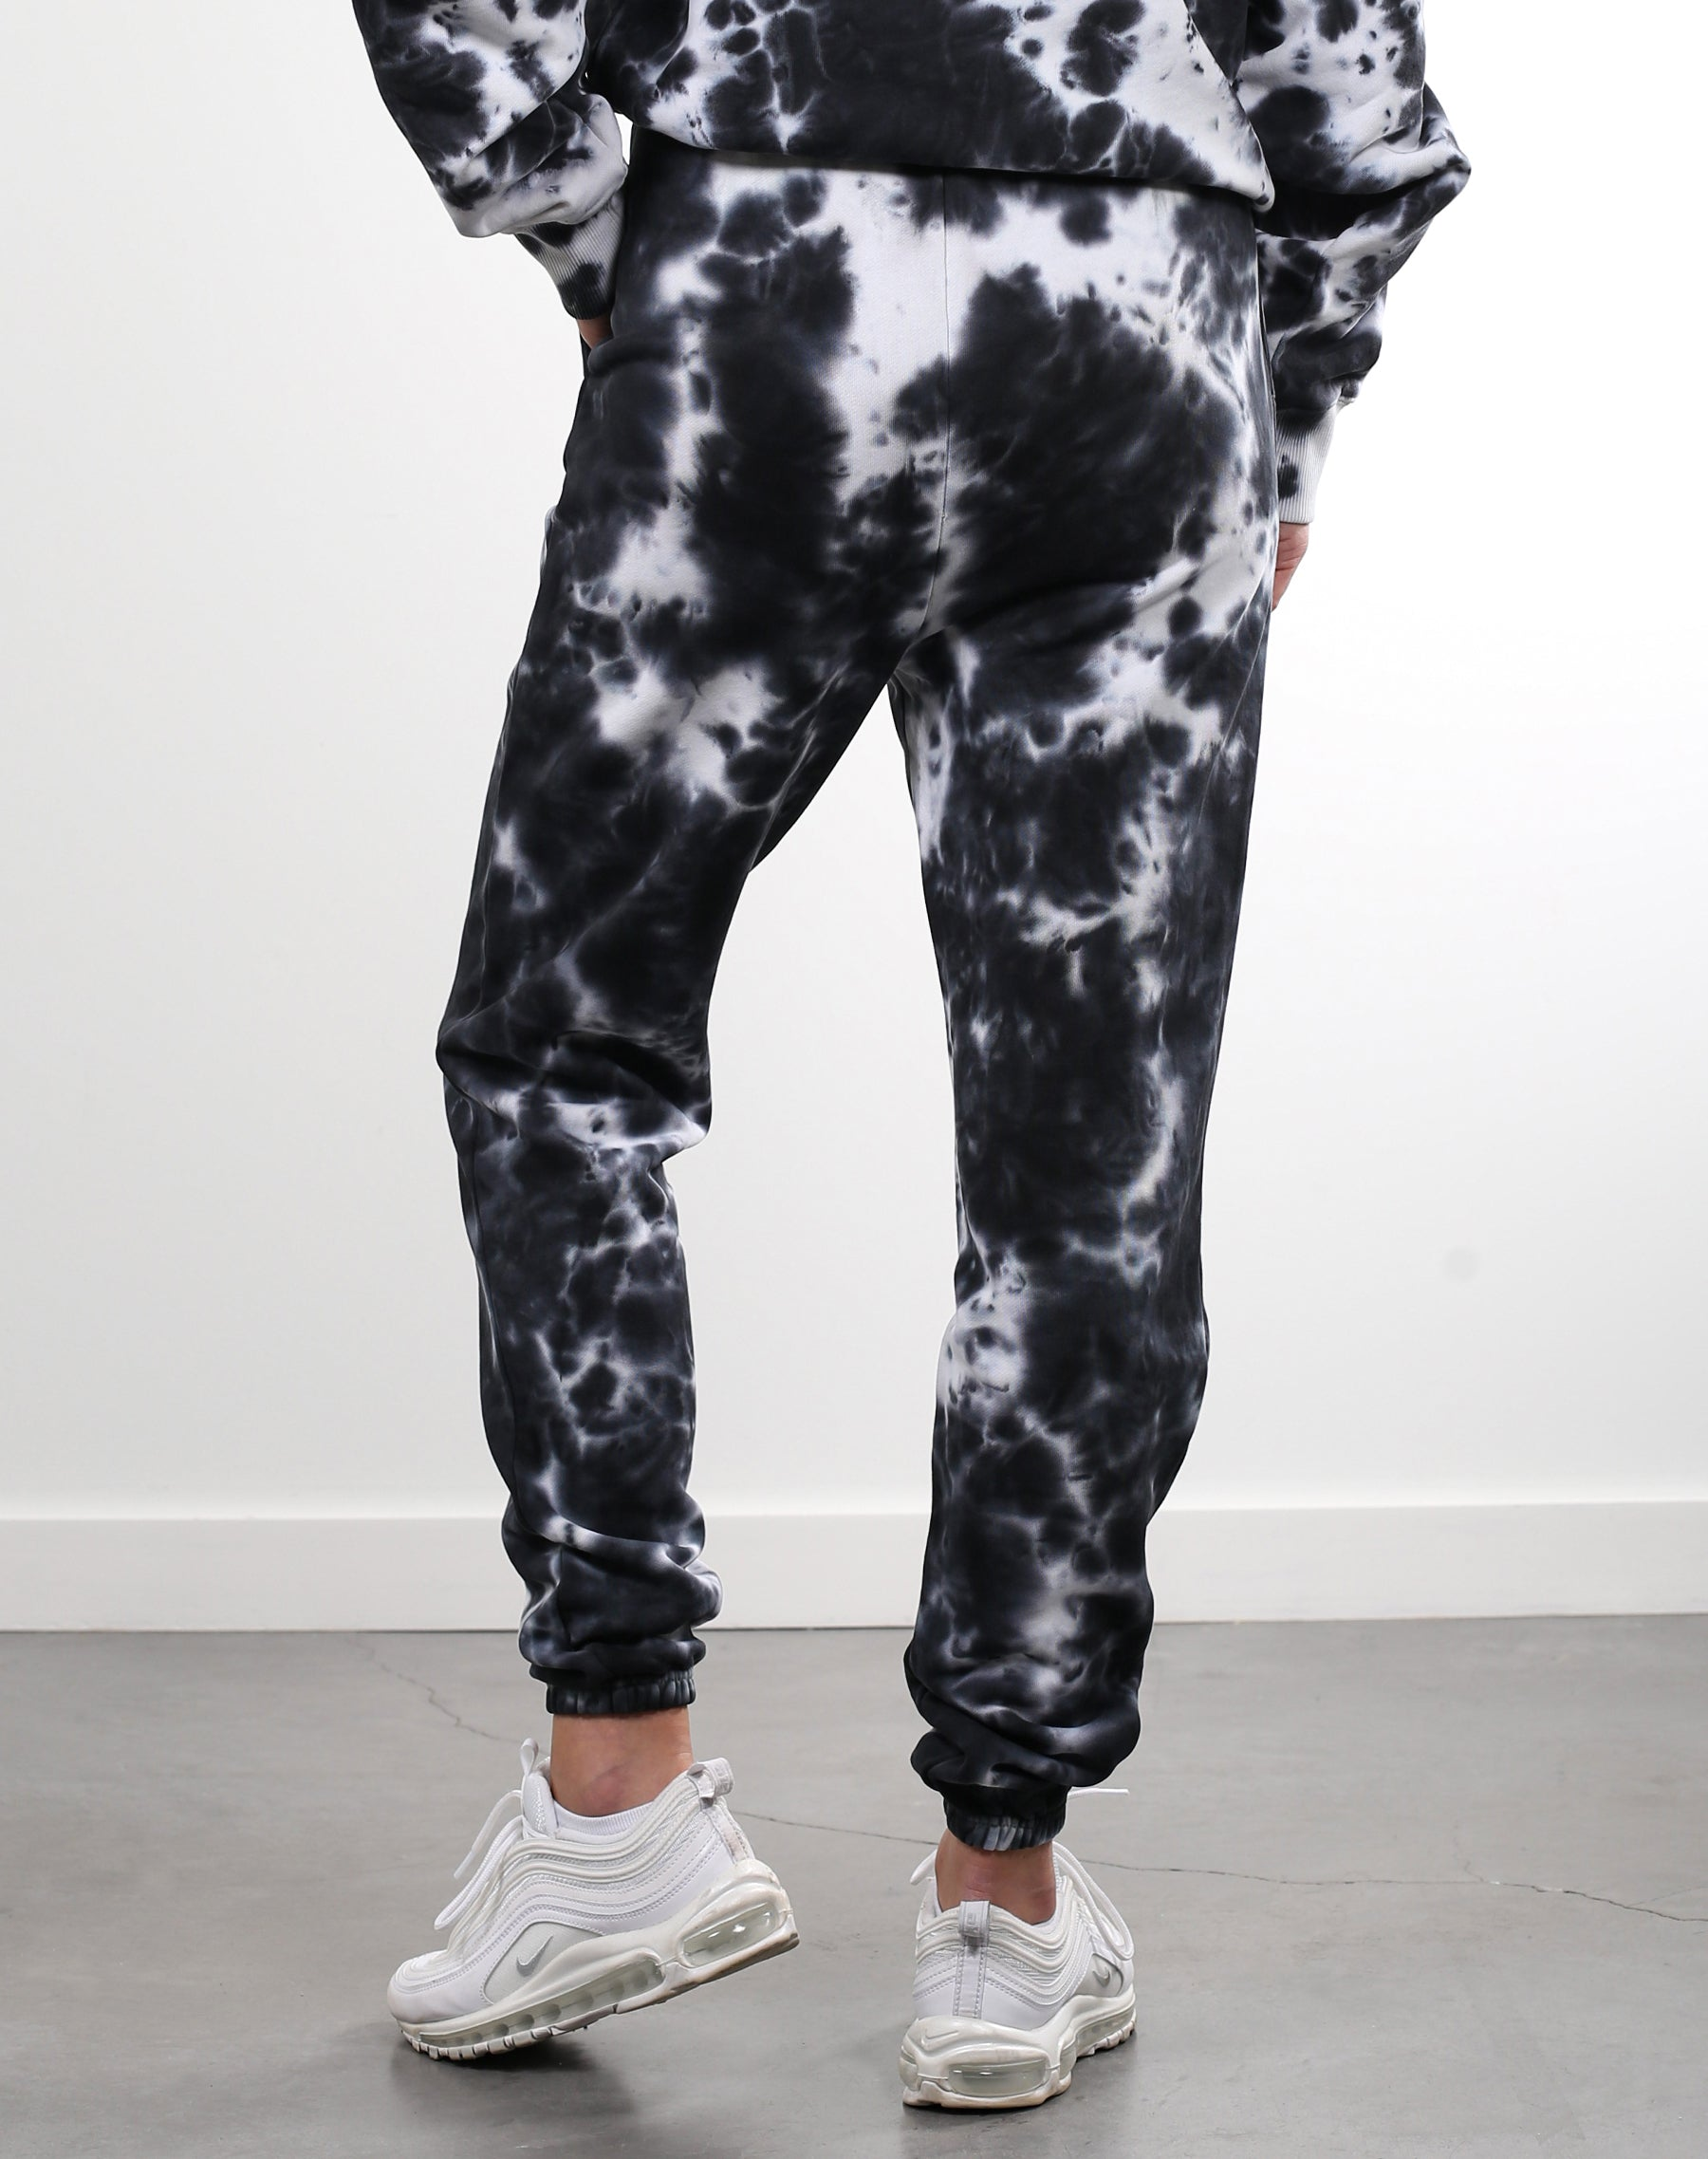 This is a photo of a model wearing the Best Friend Jogger in Black Marble Dye by Brunette the Label.